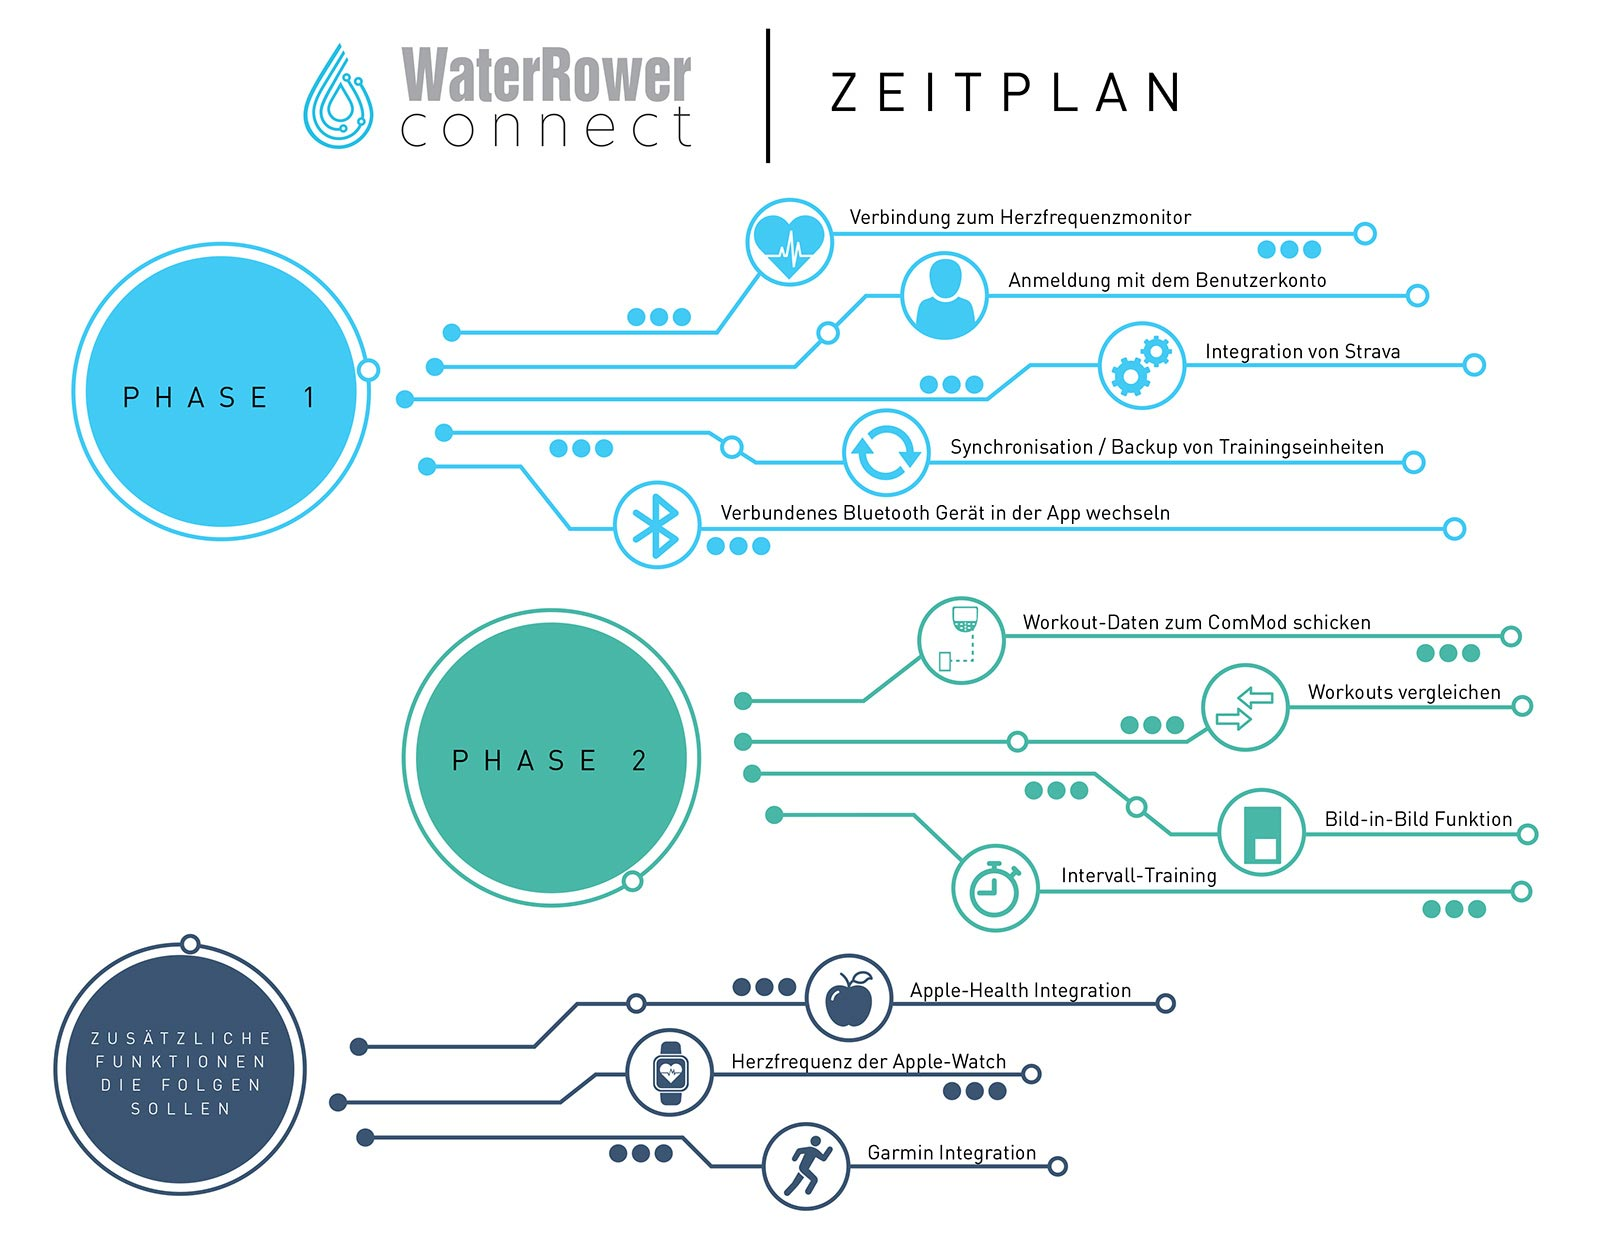 WaterRower Connect Roadmap